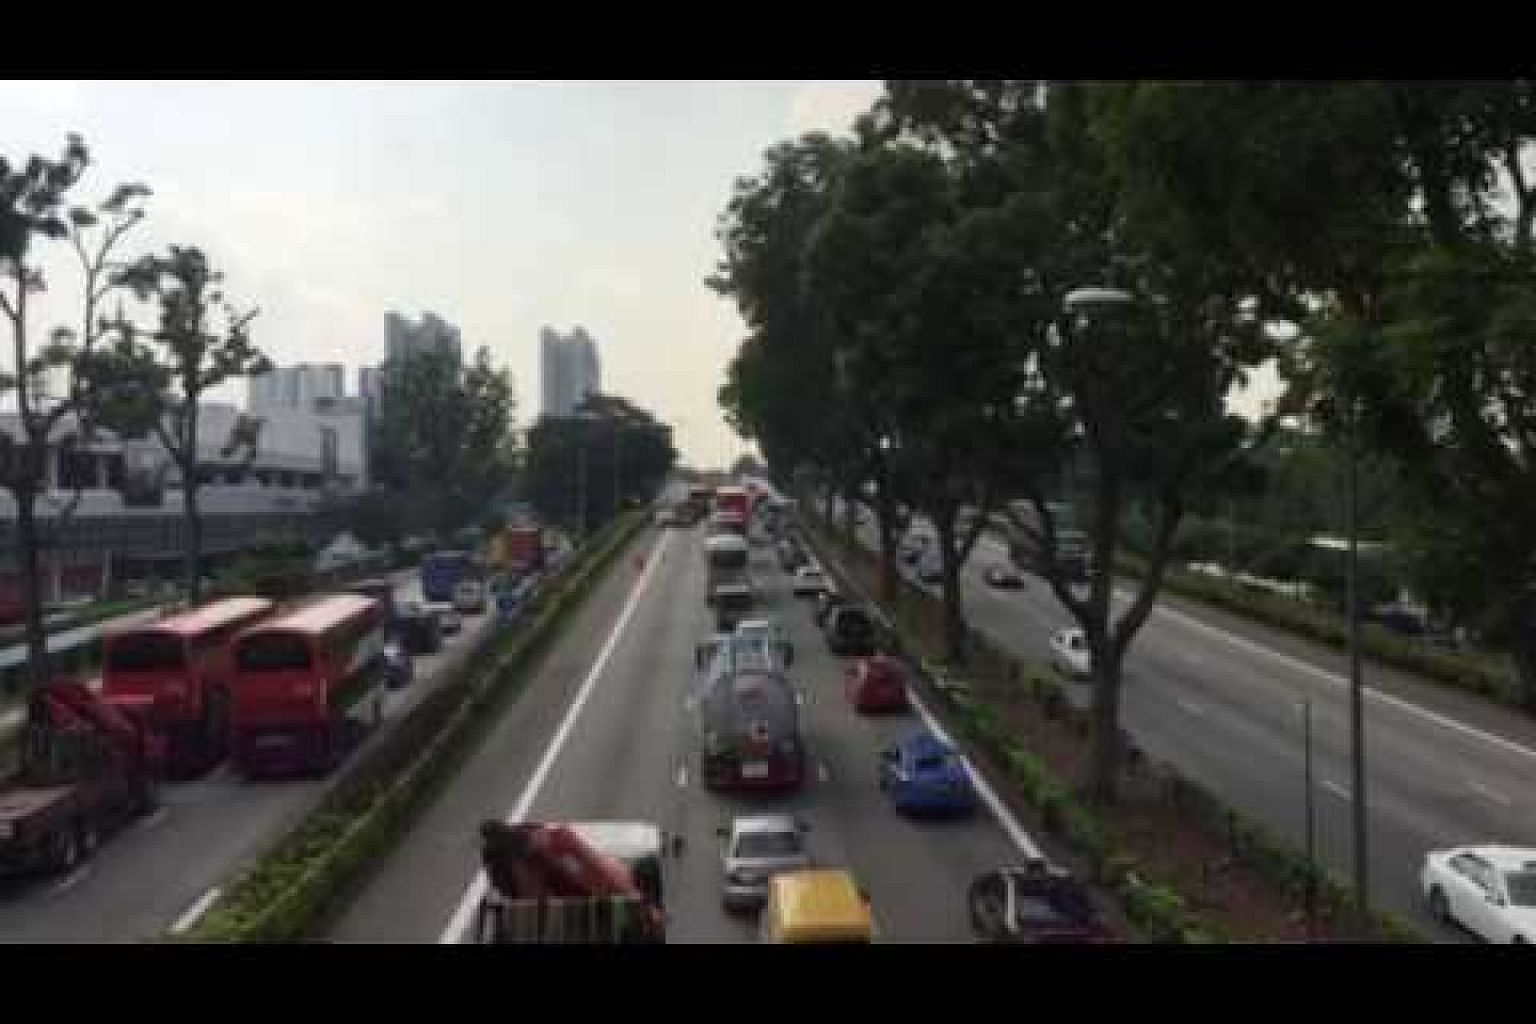 Accident on AYE causes bad jam, March 23, 2017